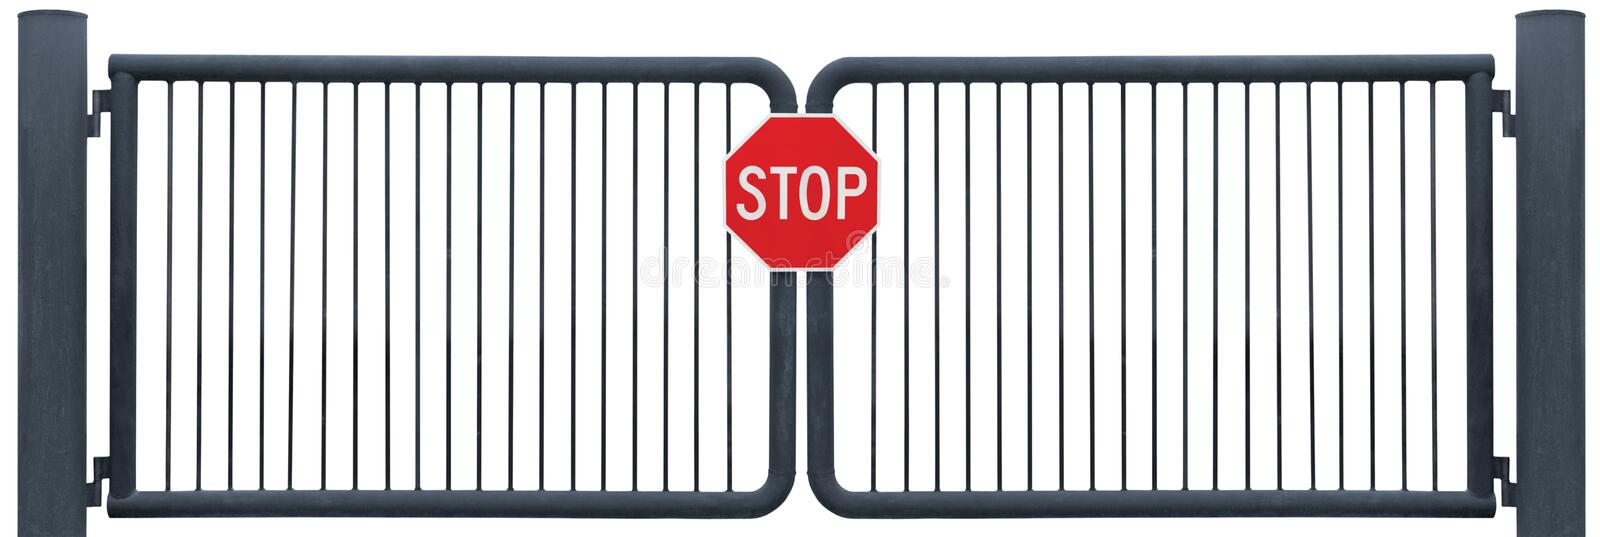 Download Old Weathered Gate Stop Sign Black Isolated Stock Image - Image of closed, metal: 20969033